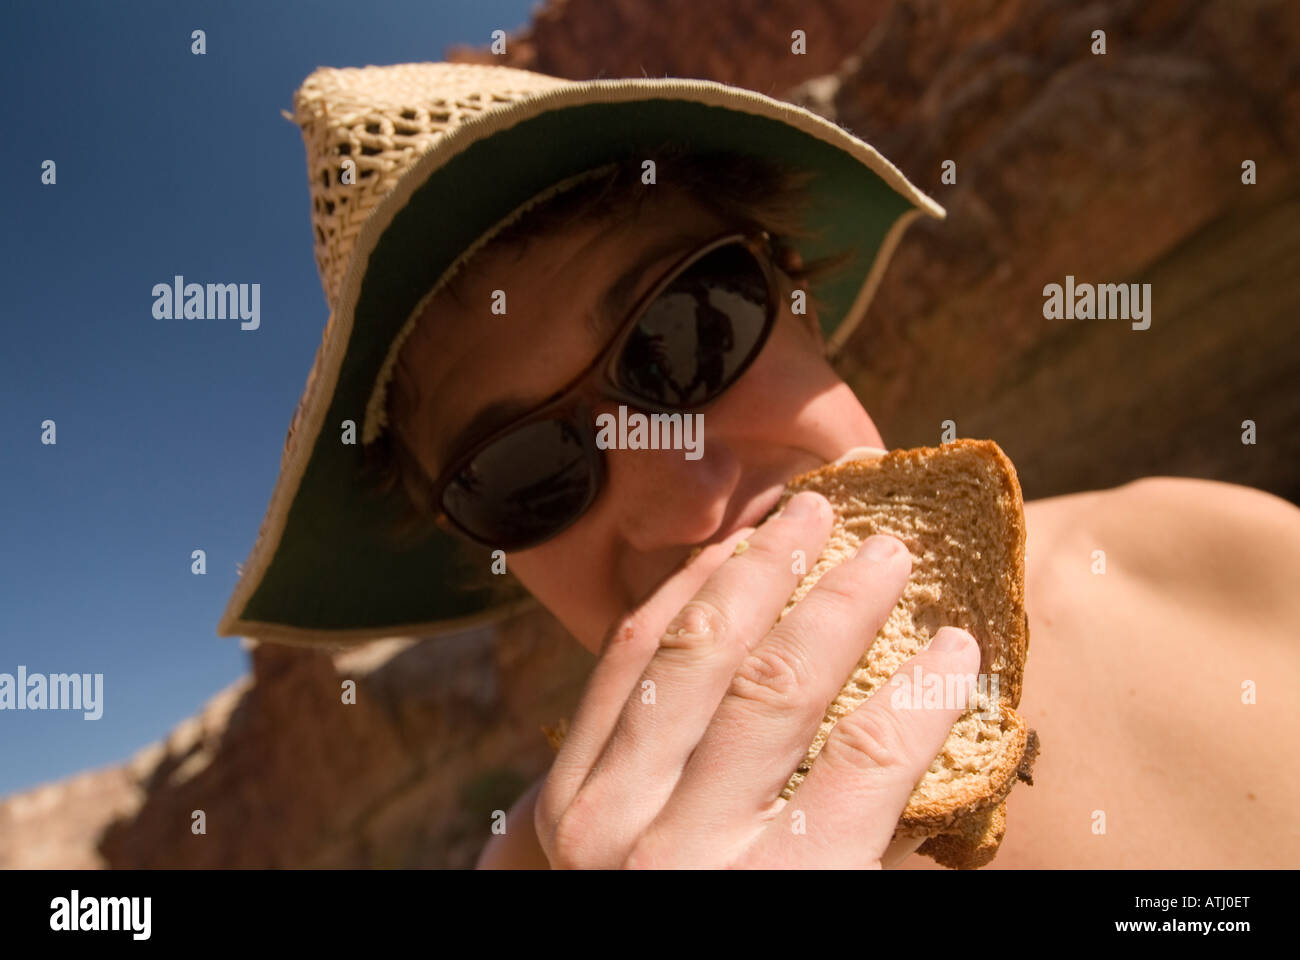 Humerous shot of man taking bite of sandwich during lunch on the Colorado River in the Grand Canyon National Park - Stock Image